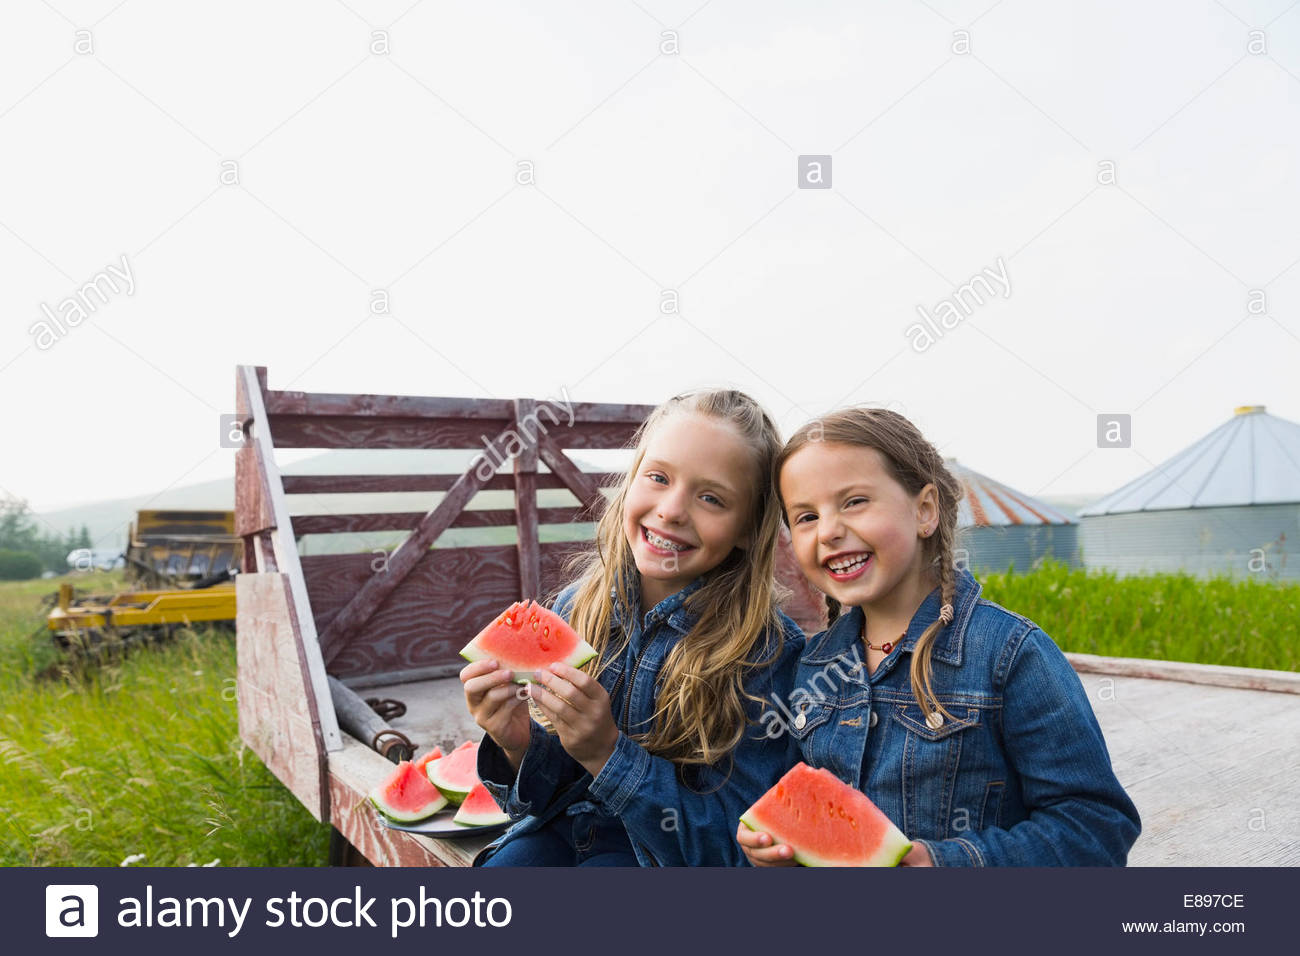 Portrait of smiling girls eating watermelon on farm - Stock Image